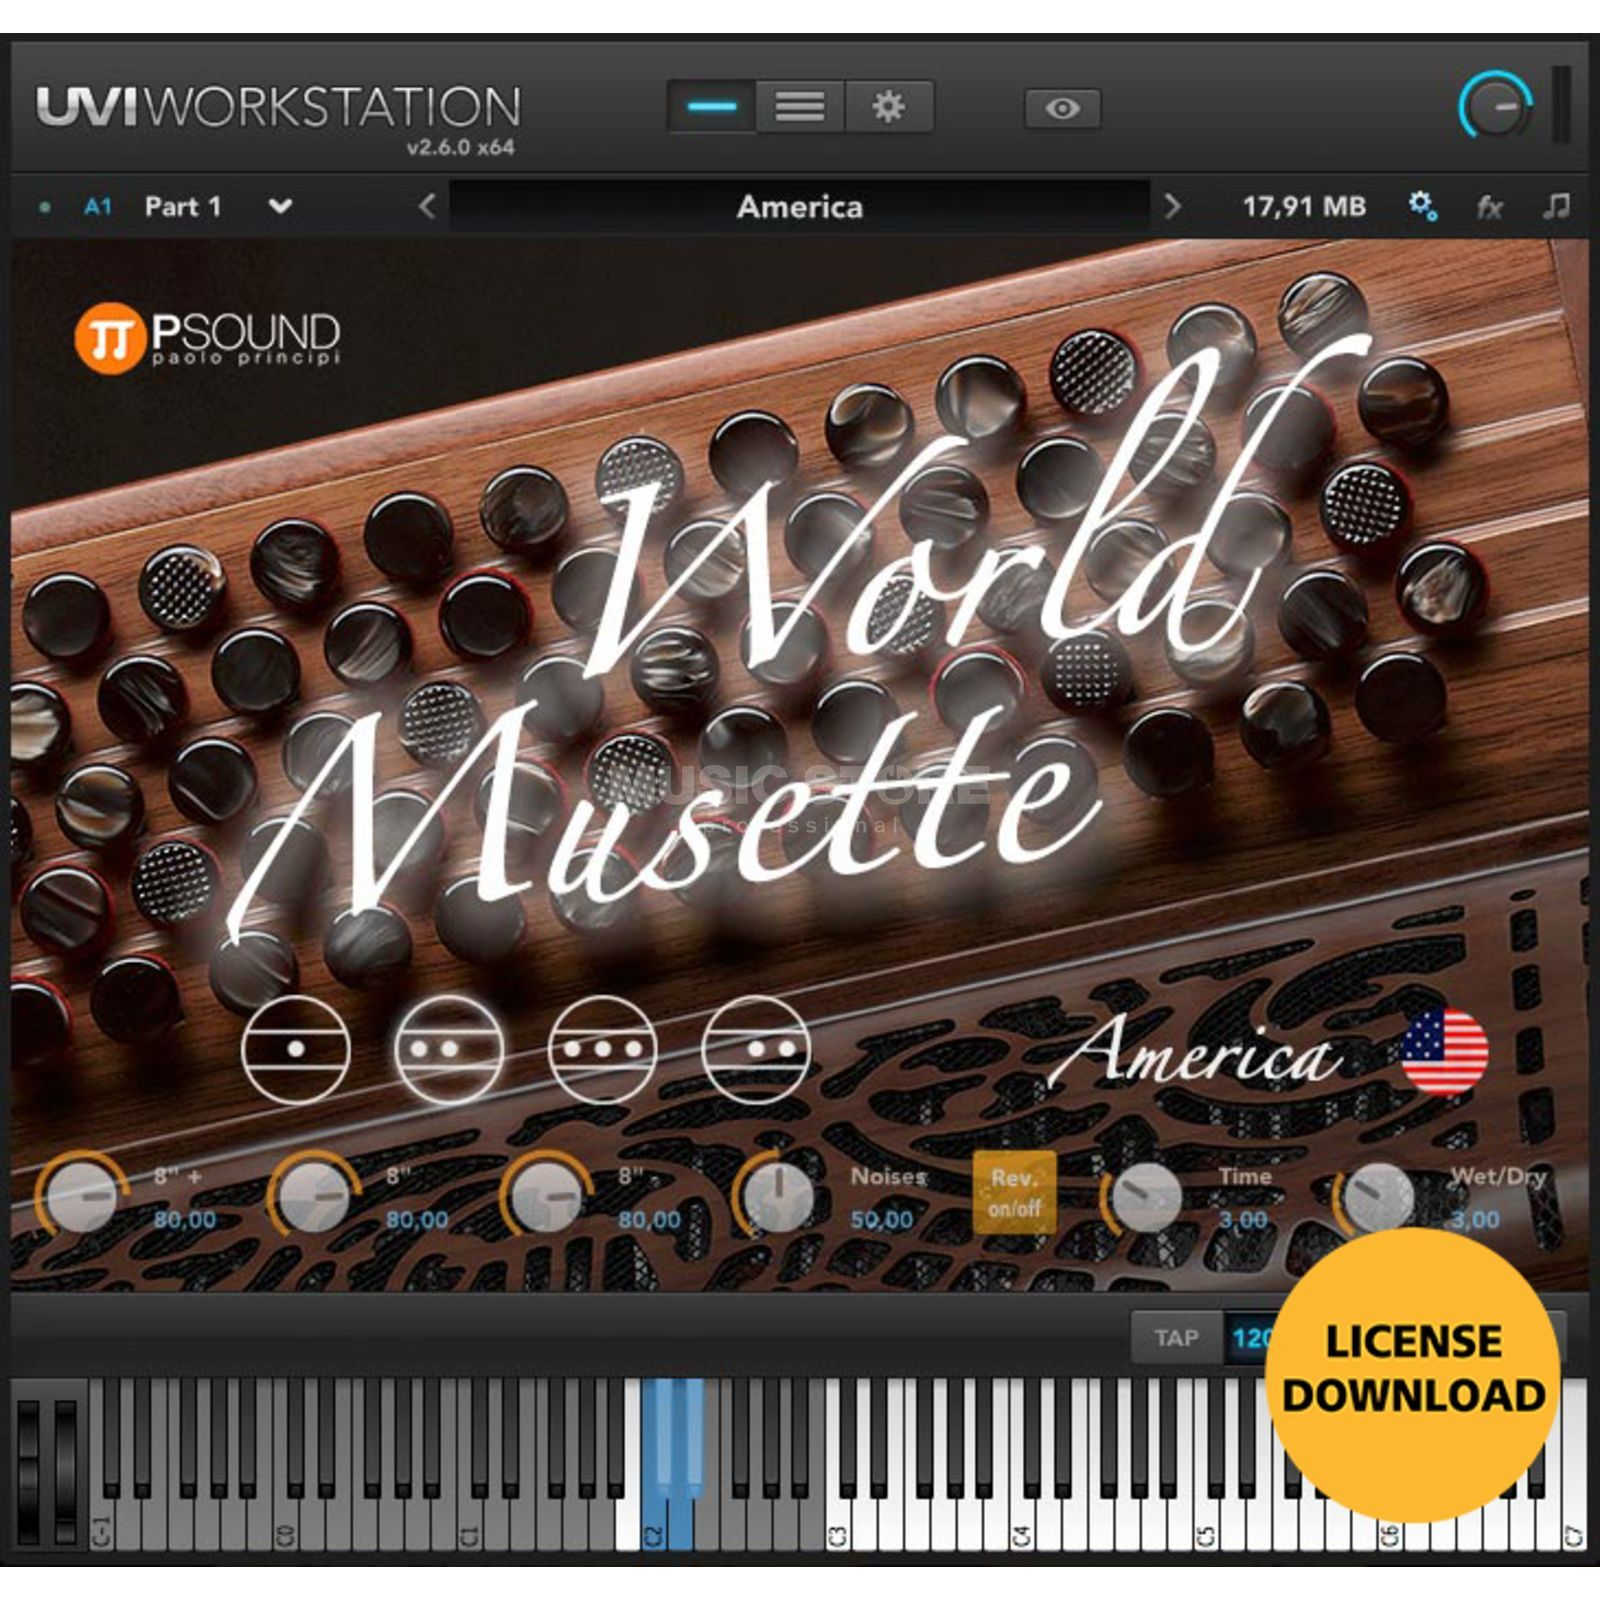 PSOUND PAOLO PRINCIPI PSOUND World Musette Accordeon (CODE) incl. UVI Workstation Produktbild